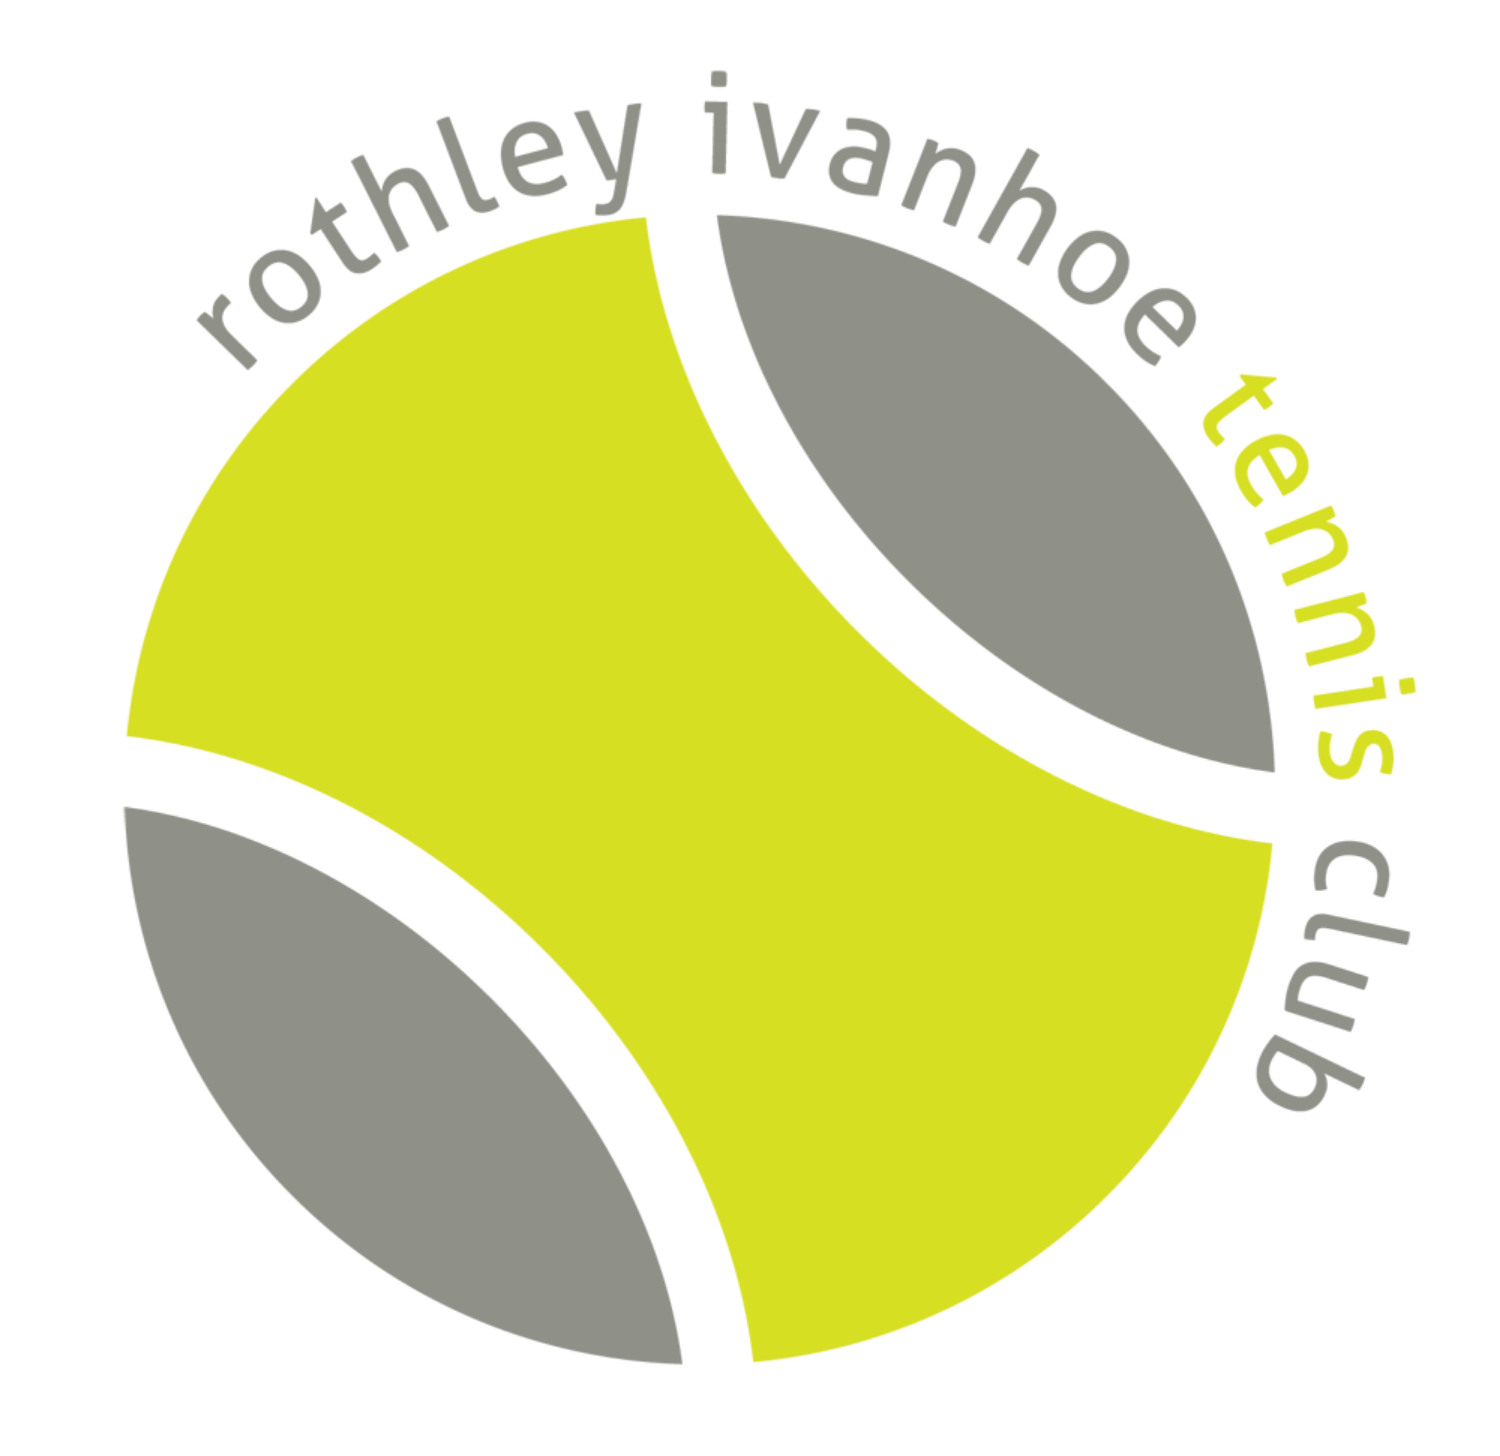 Rothley Ivanhoe Tennis Club